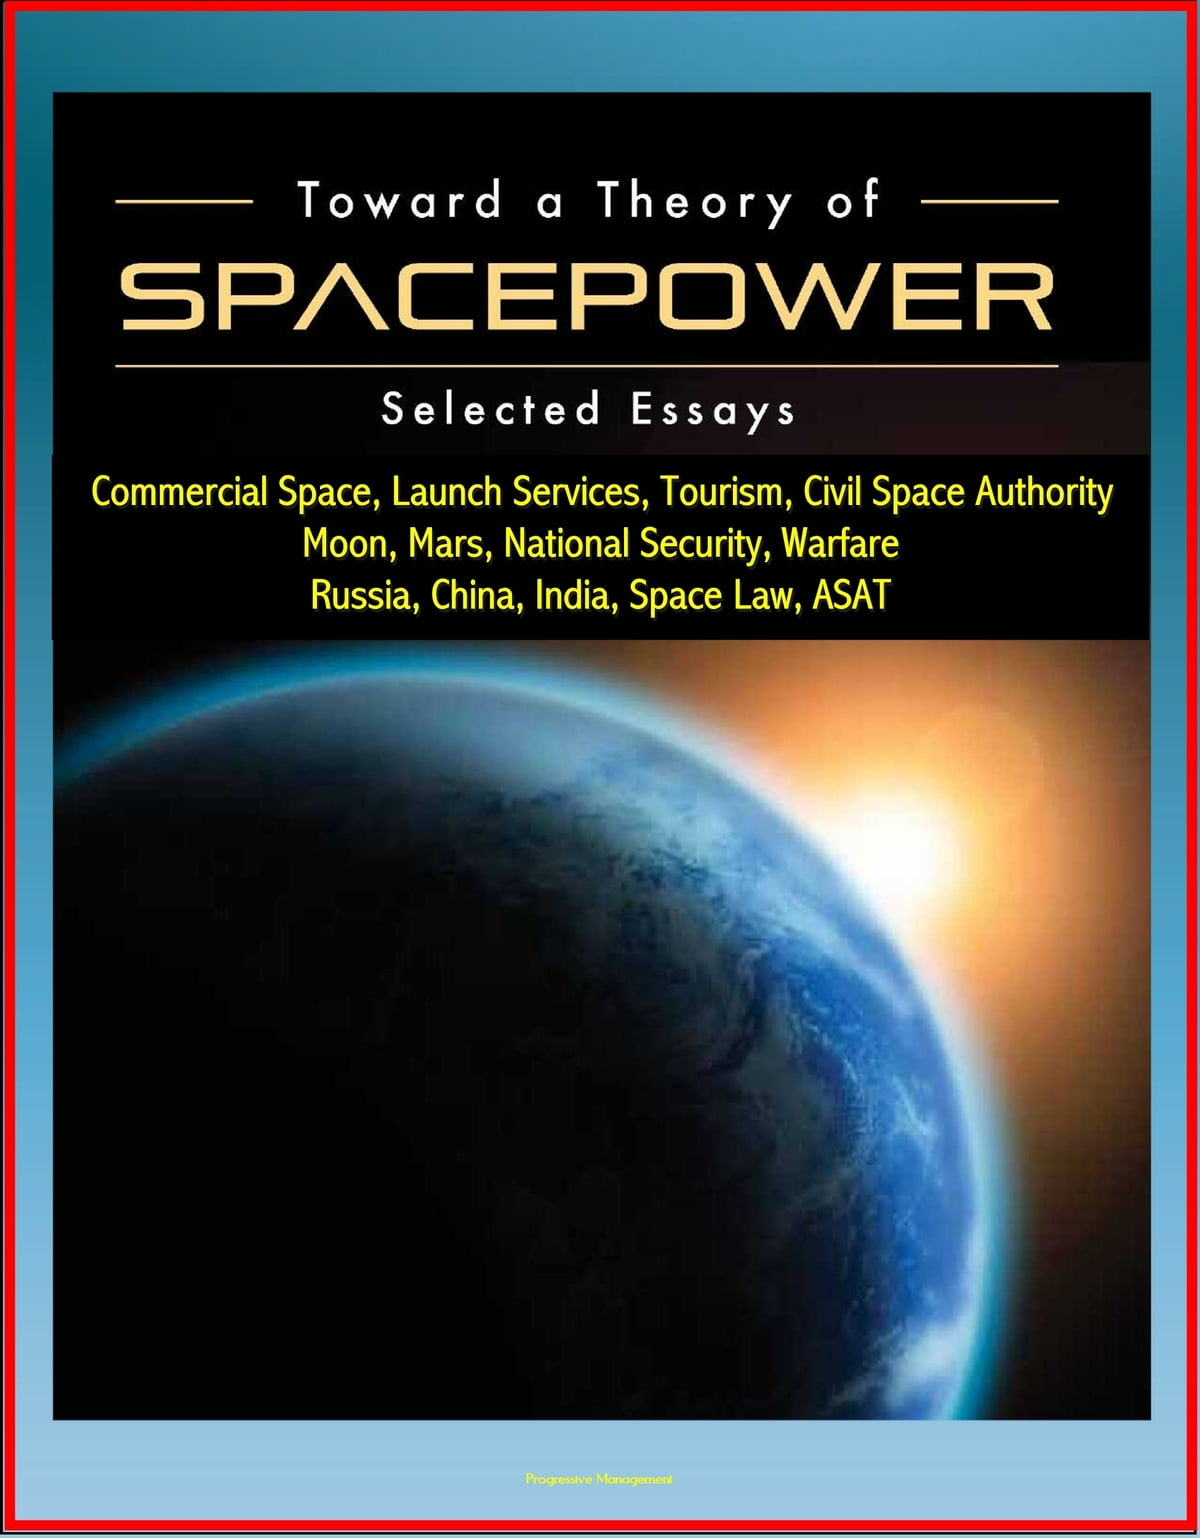 toward a theory of spacepower selected essays commercial space toward a theory of spacepower selected essays commercial space launch services tourism civil space authority moon mars national security warfare